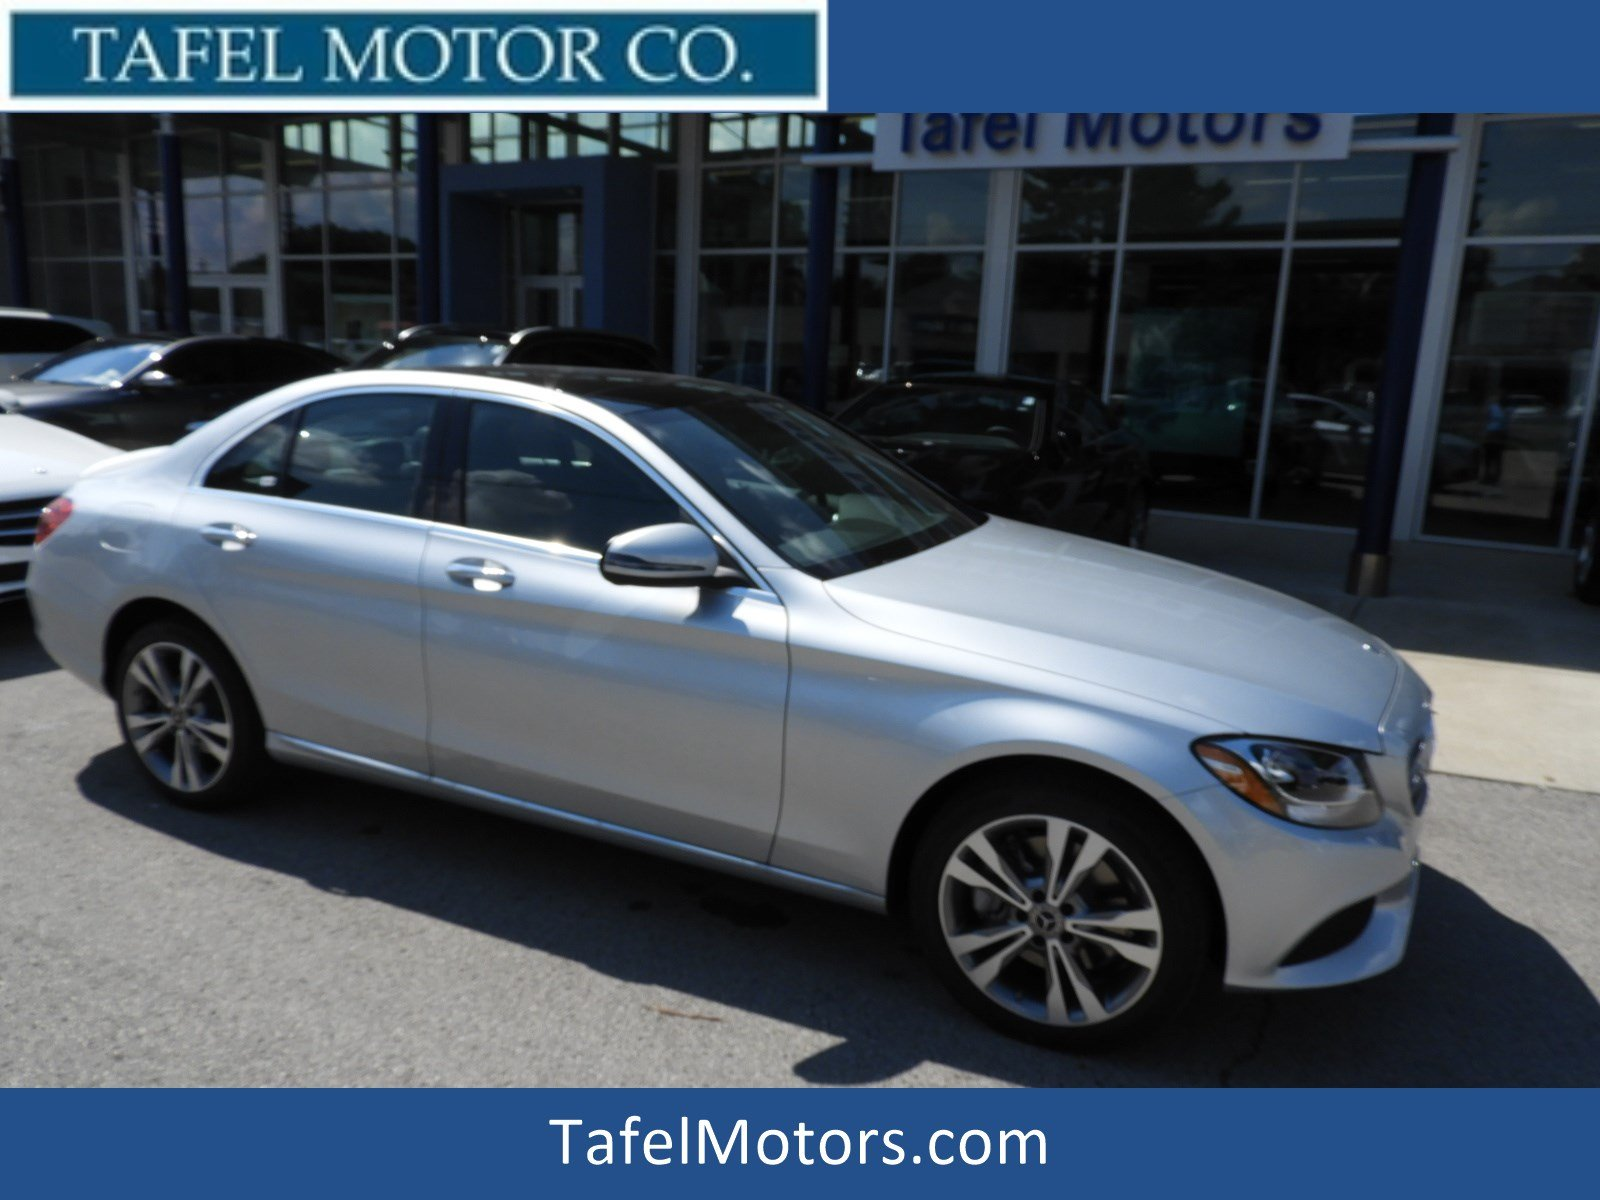 New 2018 Mercedes Benz C Class C 300 4MATIC Sedan 4dr Car in